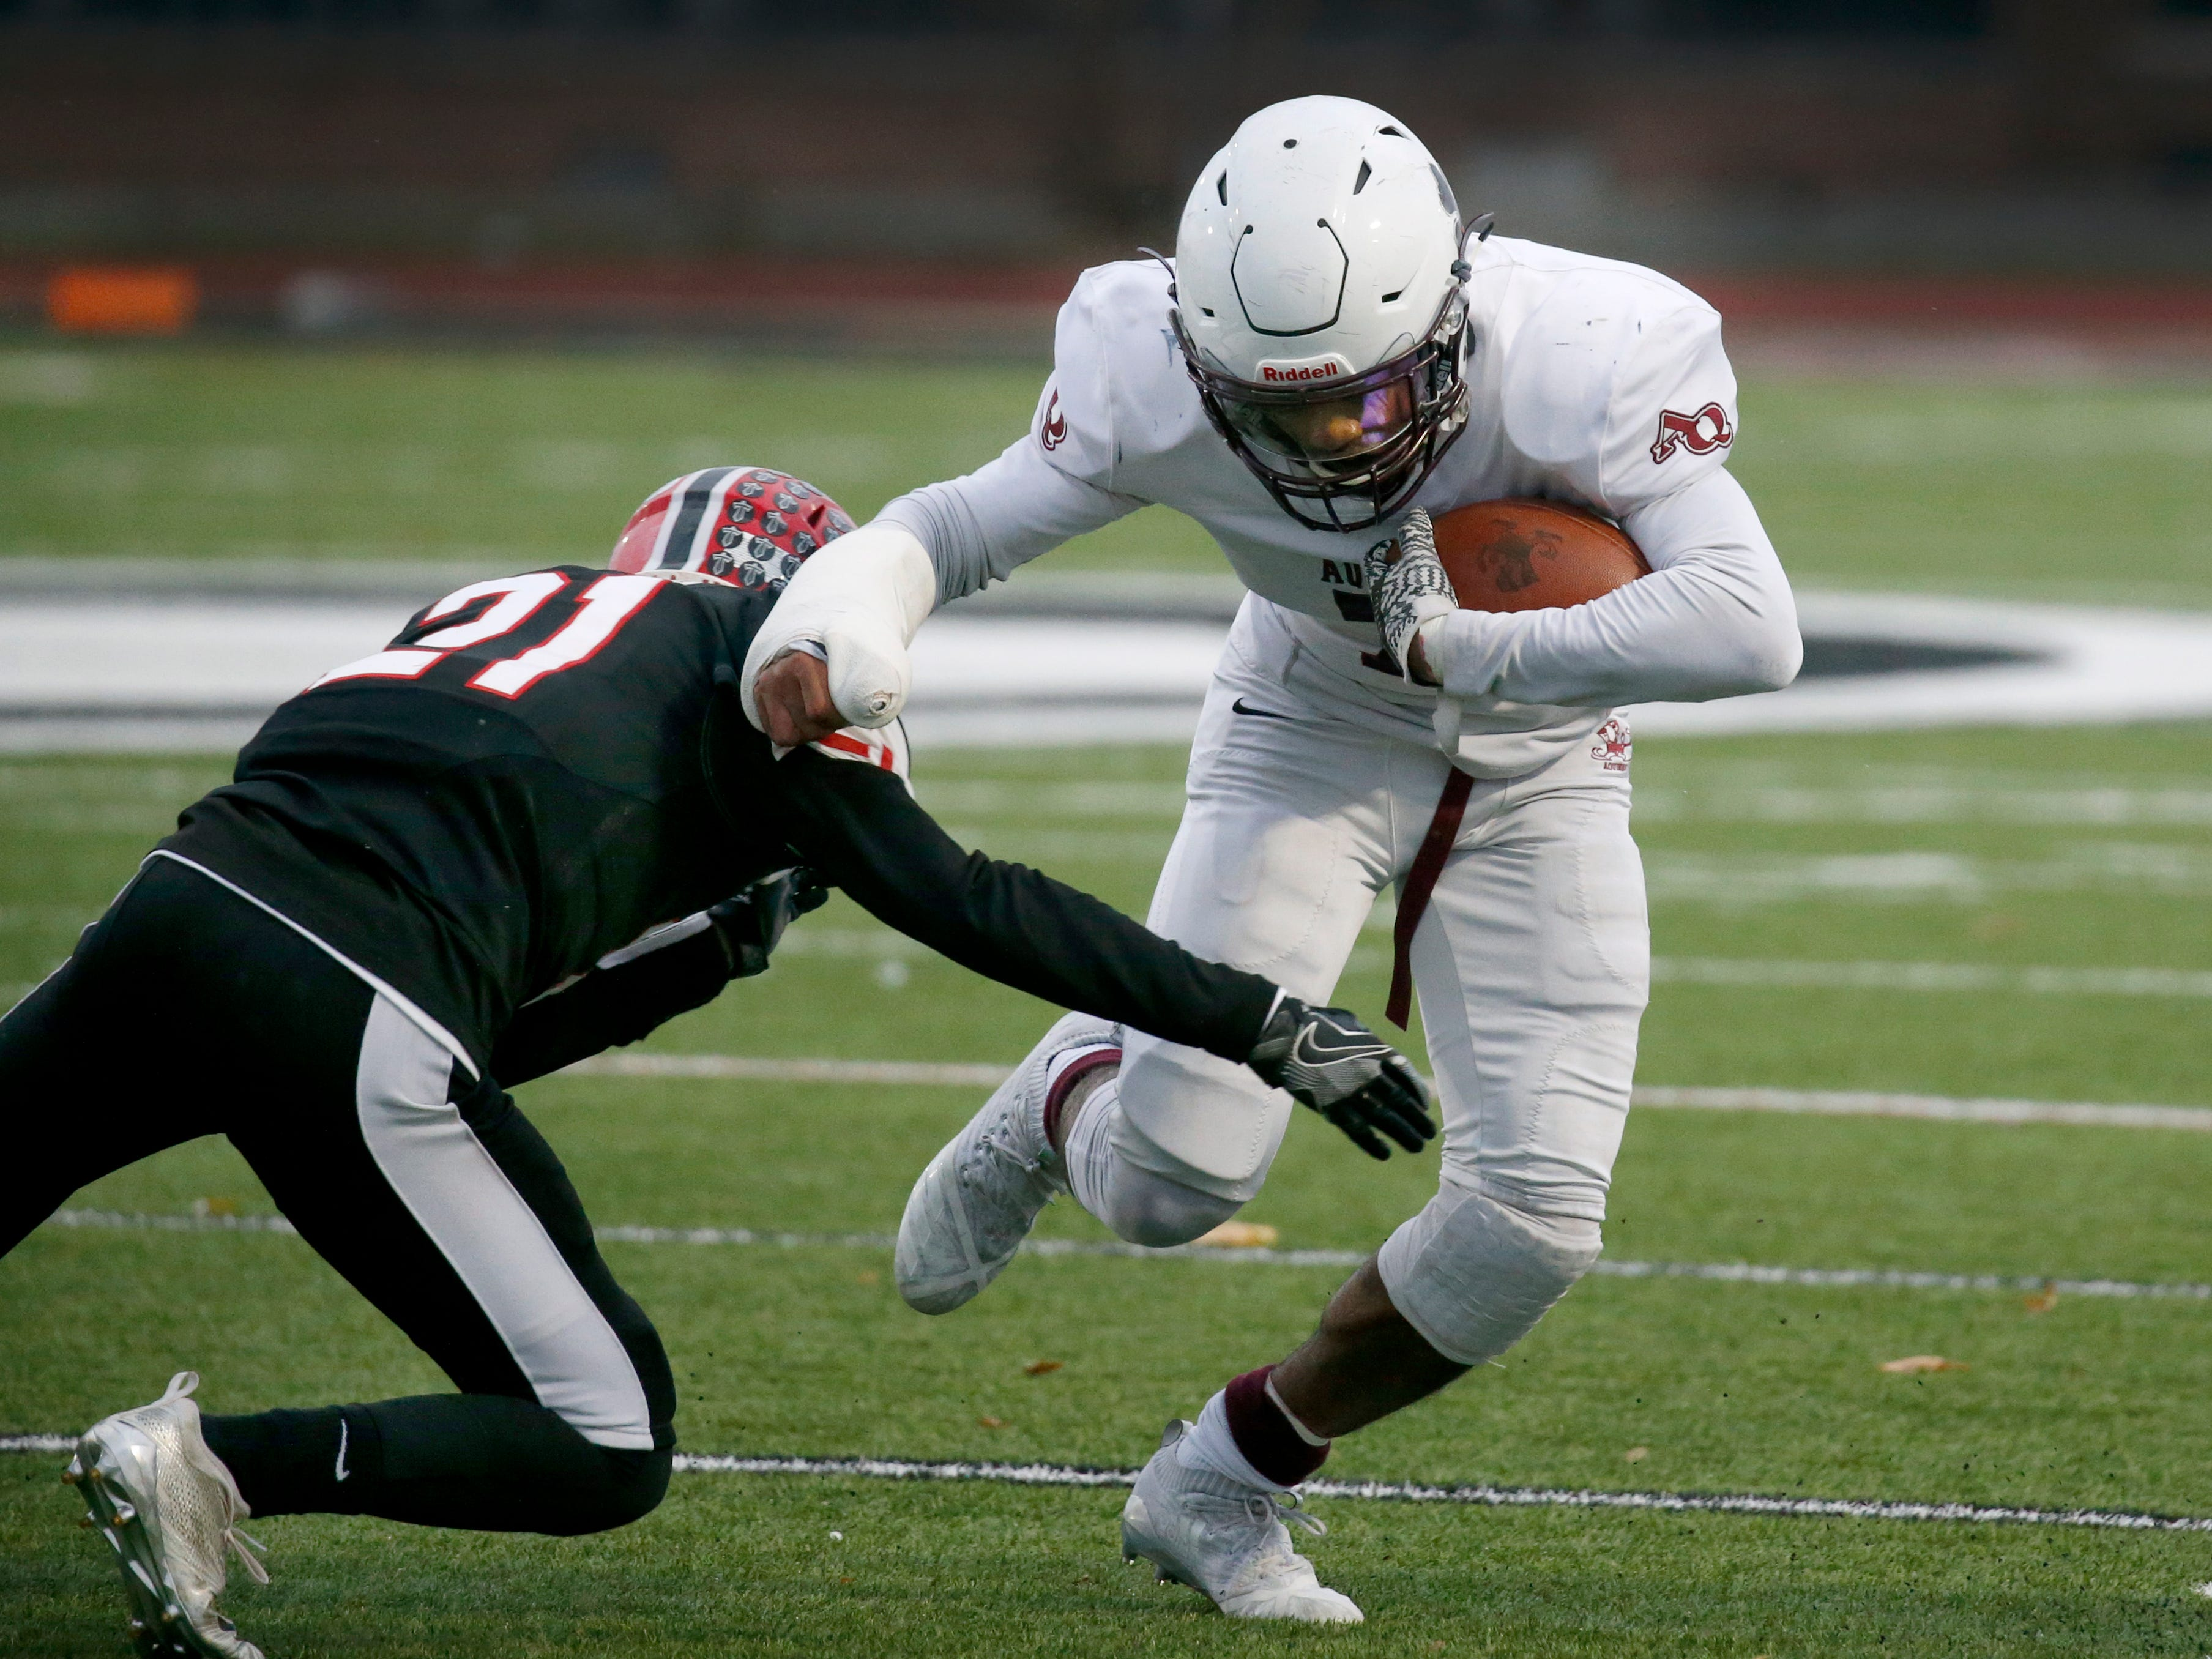 Aquinas' Caron Robinson  is tackled by Lancaster's Nick Meara in the first quarter at Clarence High School on Nov. 10, 2018.